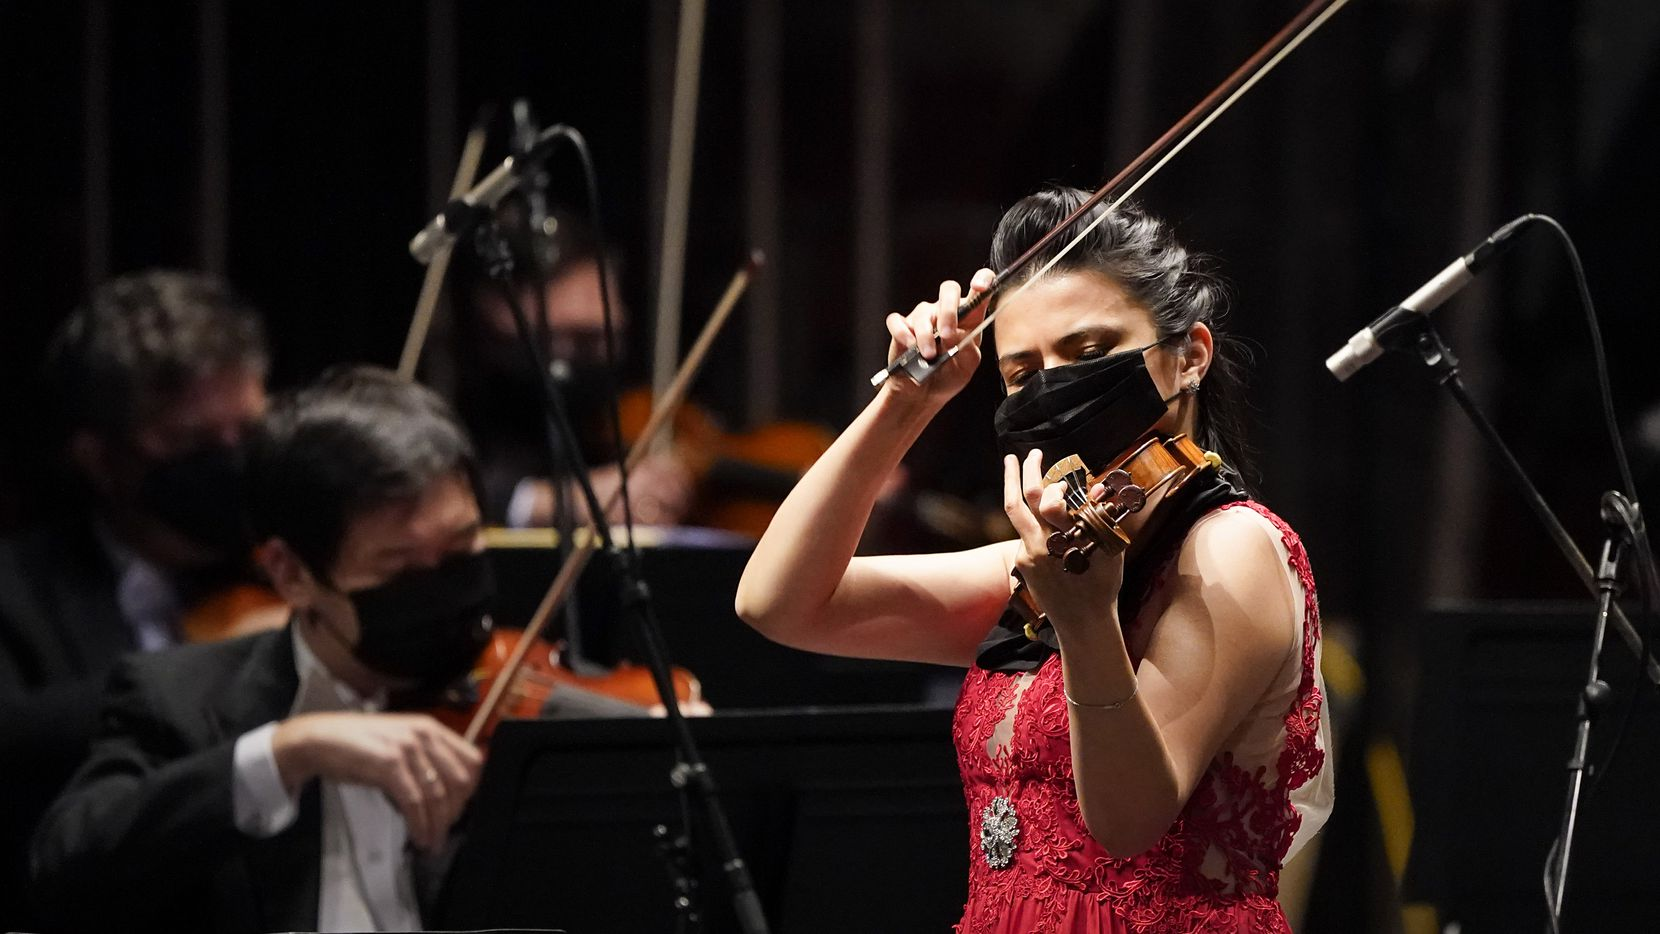 Violin soloist Karen Gomyo performs with the Fort Worth Symphony in concert at the Will Rogers Auditorium on Friday, Oct. 30, 2020, in Fort Worth.